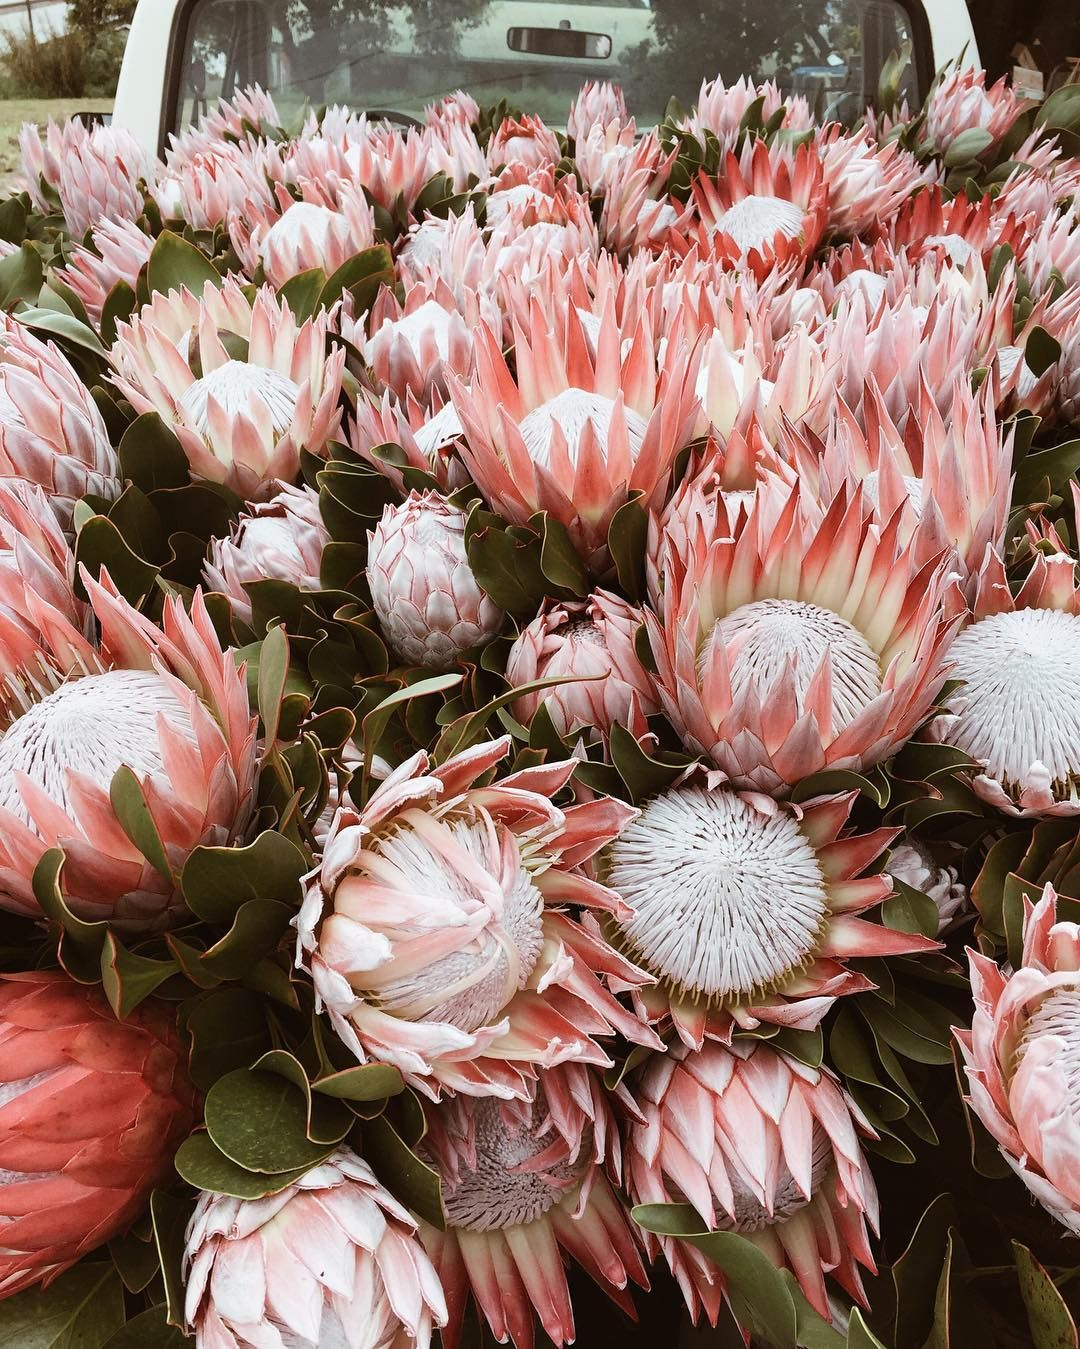 Tinyatlas On Instagram King Proteas For Your Sunday From Our Flower Farm Visit On Maui Mytinyatlas Ernathan Flower Farm Protea Flower Flowers